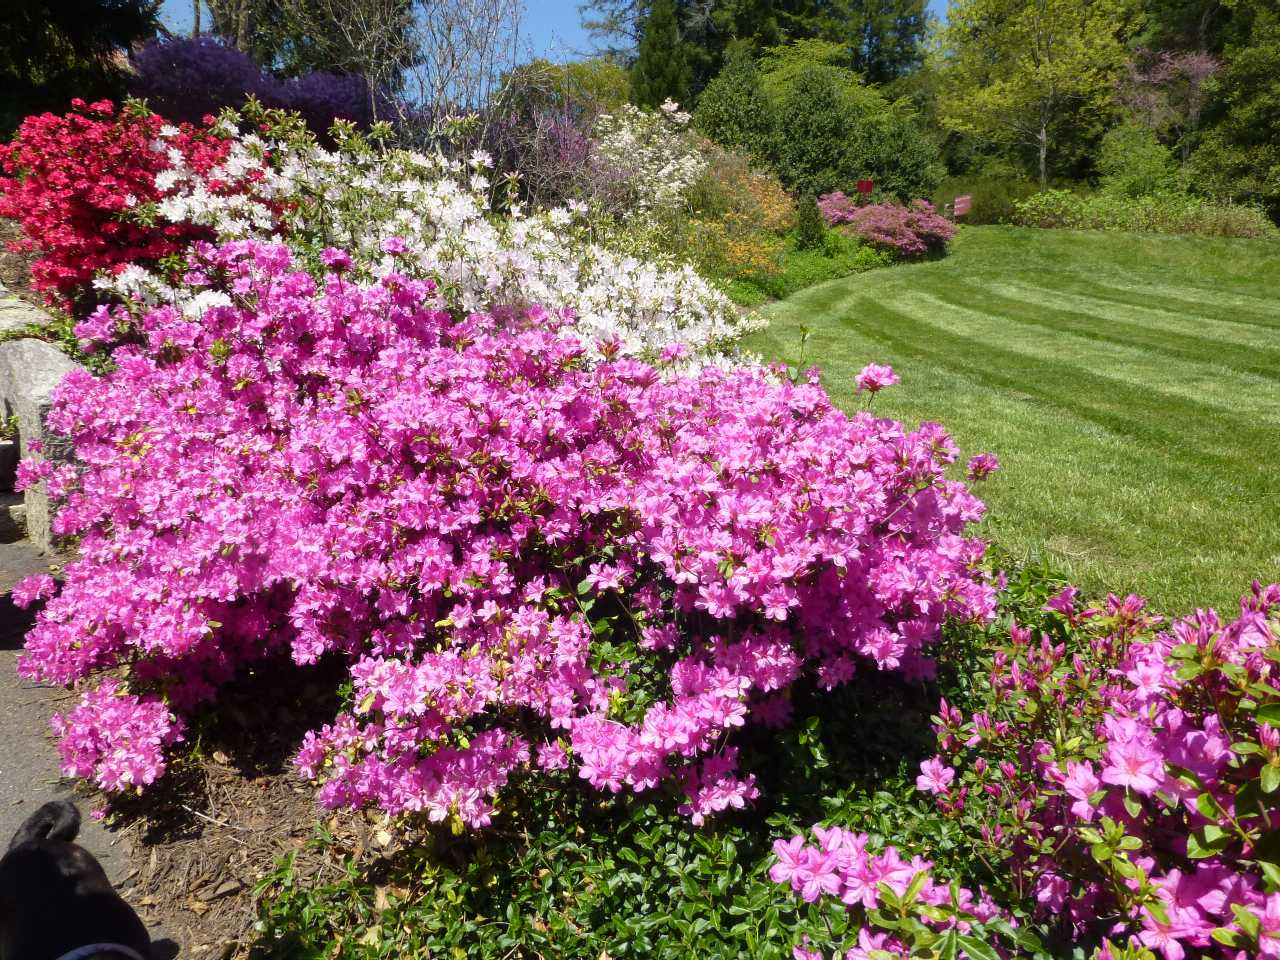 Manicured lawn flanked by several large flowering shrubs on one side